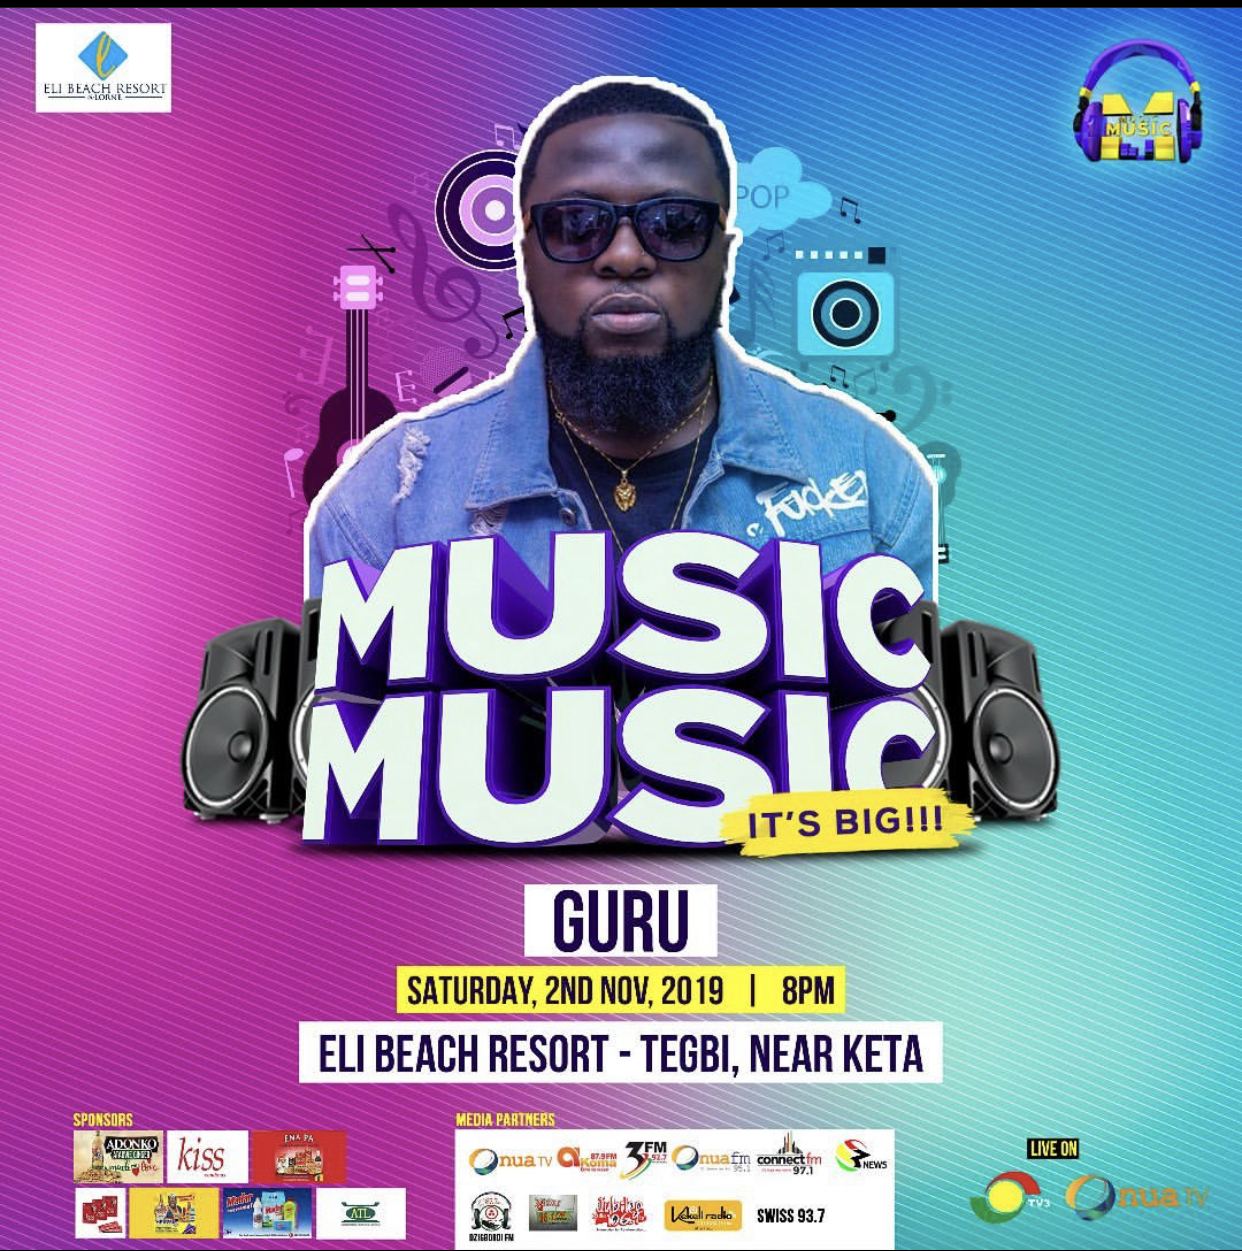 MUSIC MUSIC Blazing this weekend at Eli Beach Resort